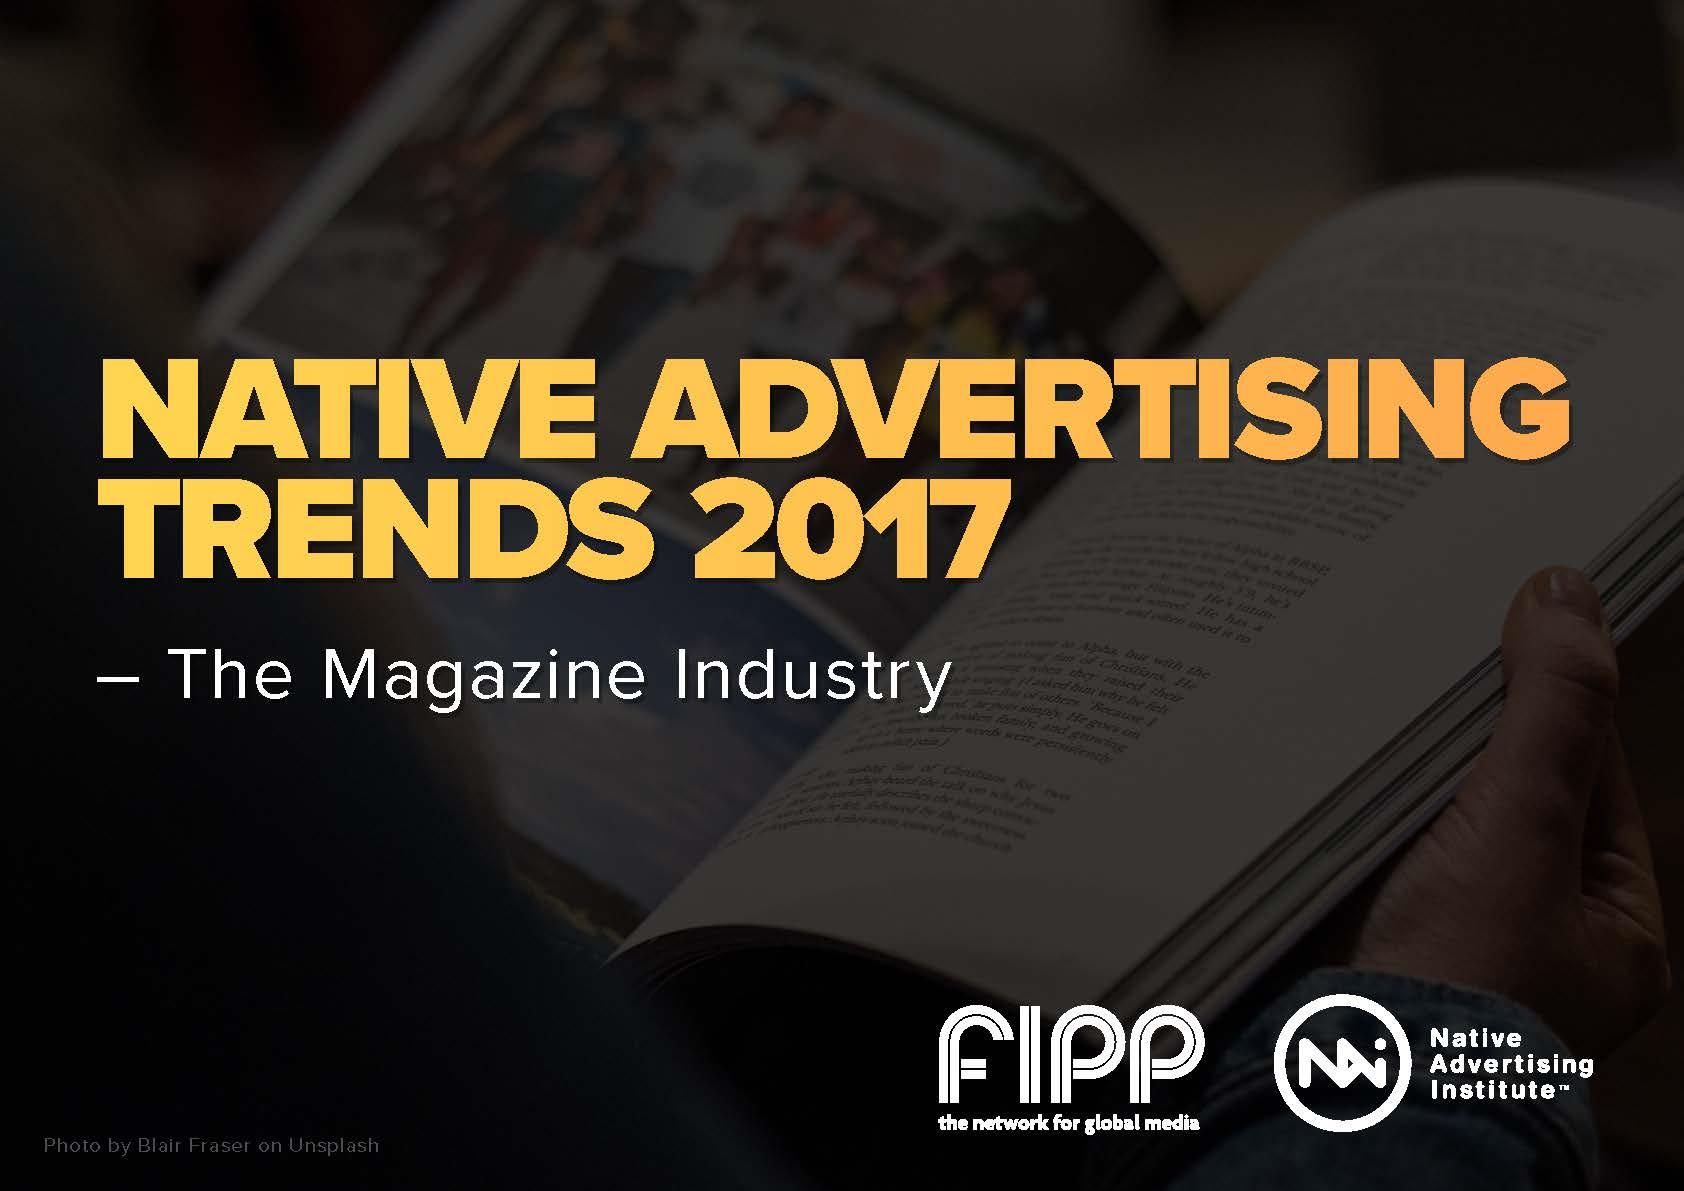 Native Advertising Trends - the Magazine Media 2017 (FIPP-NAI)